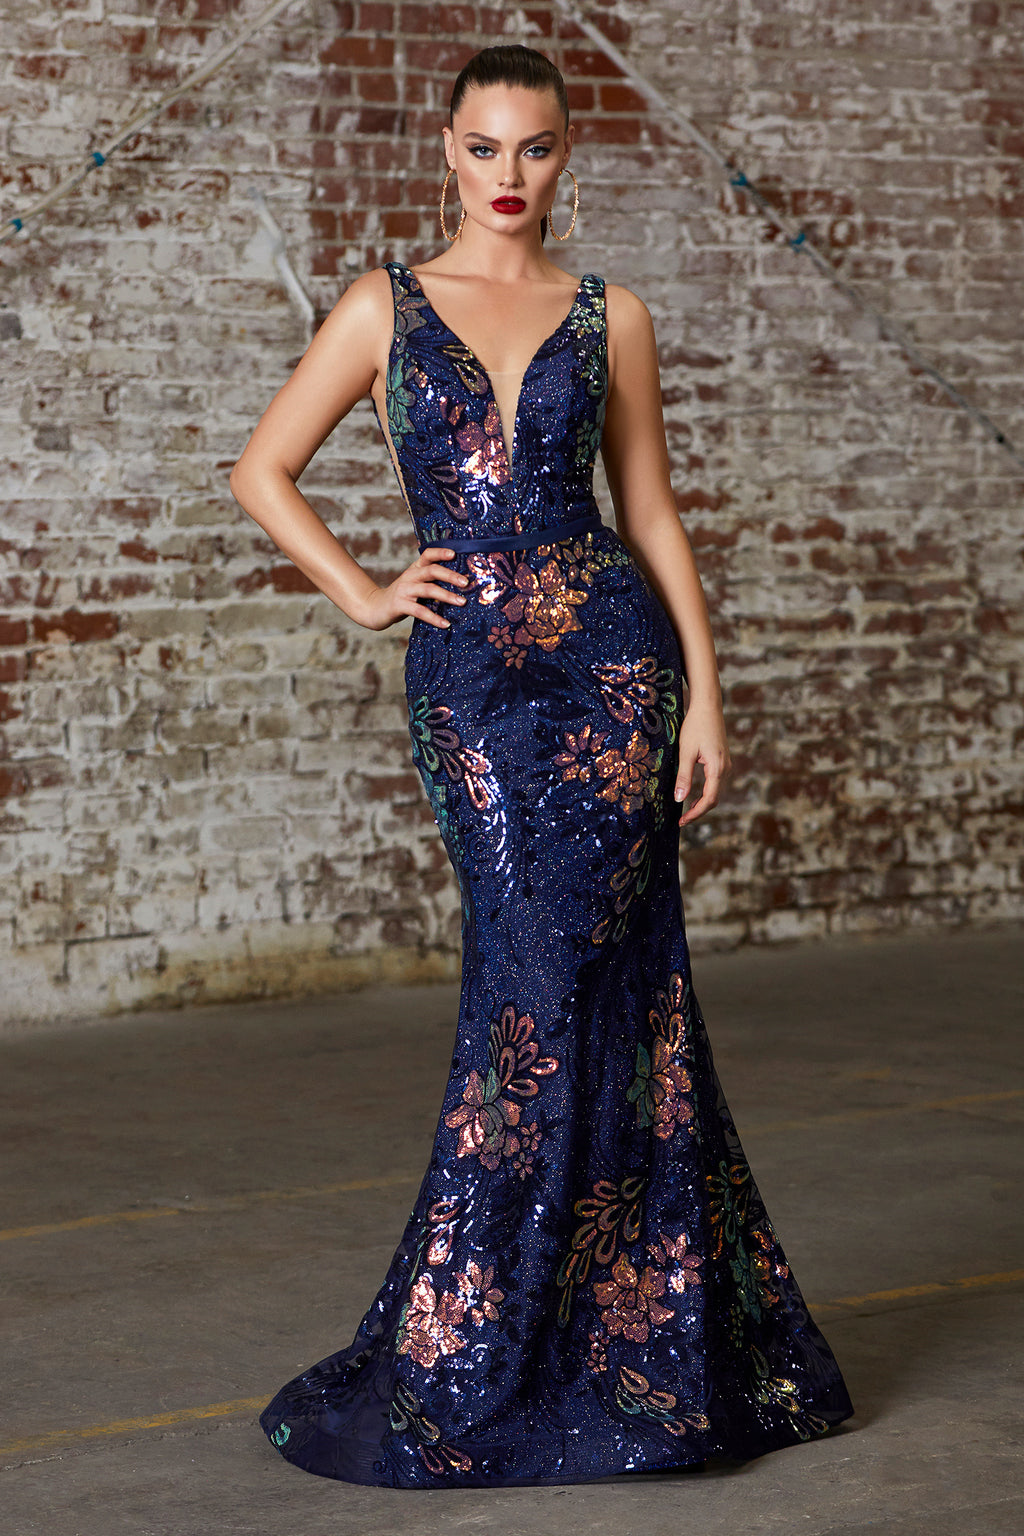 Shimmering Sequin Mermaid Gown With Floral Design Style #LAJ797 | Prom 2020